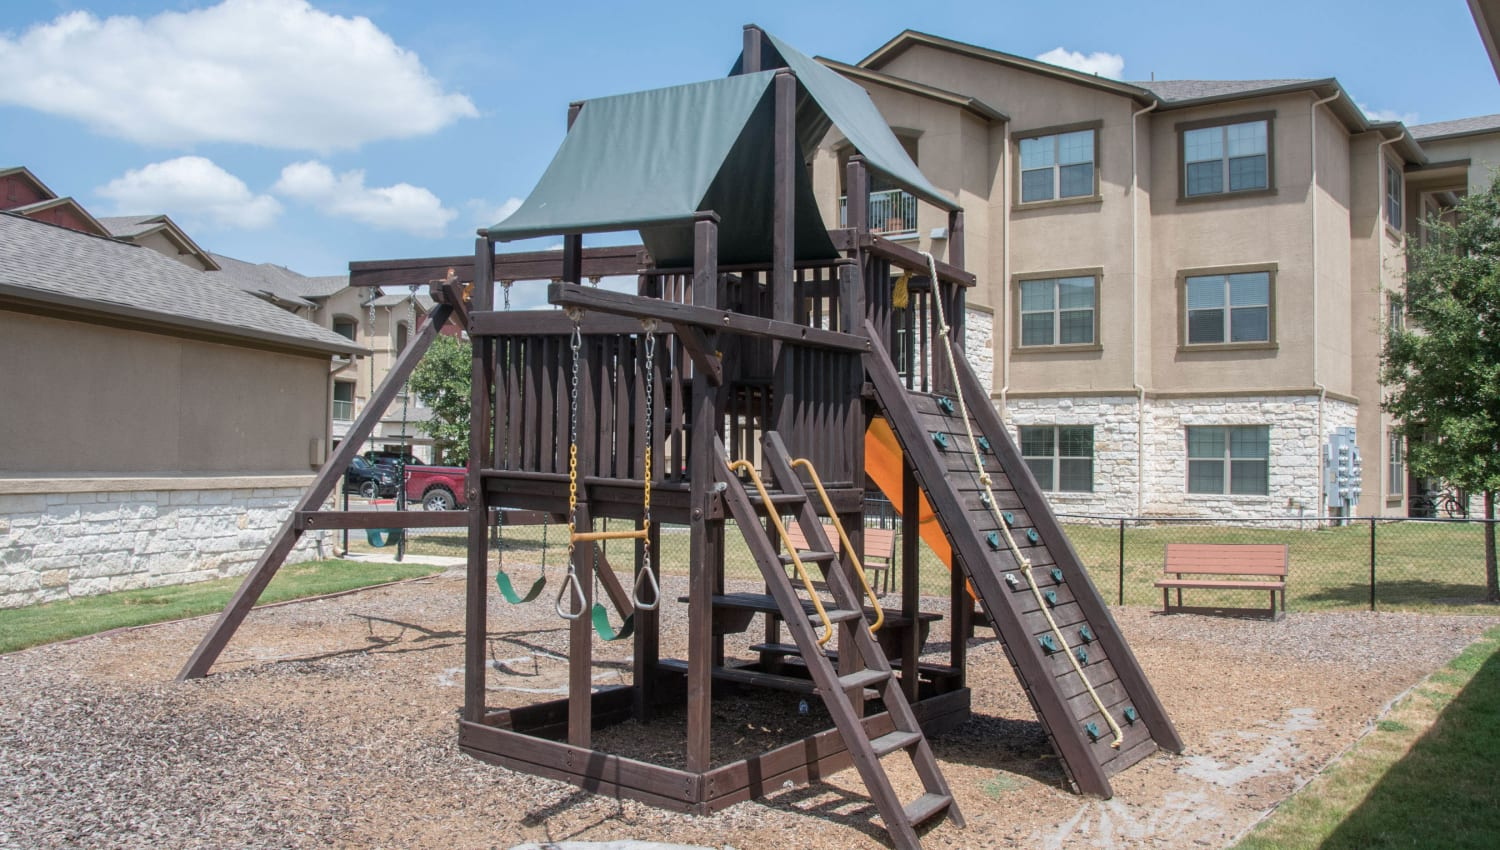 Onsite children's playground at Carrington Oaks in Buda, Texas